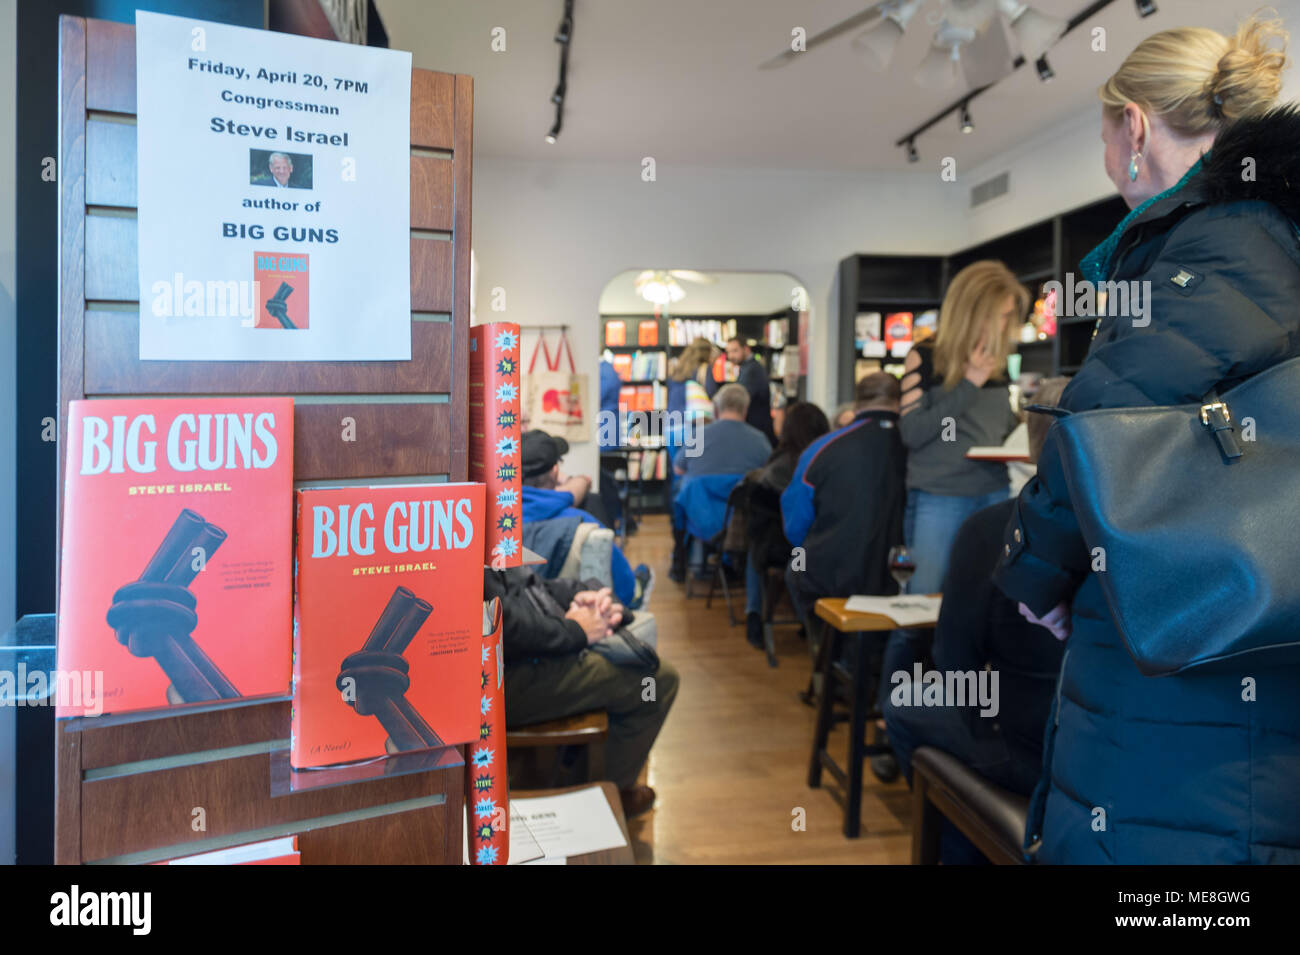 Rockville Centre, New York, USA. 20th Apr, 2018. On display at Turn of the Corkscrew Books & Wine store are copies of Rep. Steve Israel's newest novel BIG GUNS and a flyer with information about the special event about to start there for Nassau County debut of the former Congressman's (NY - Dem) book. BIG GUNS is a satire of the strong gun lobby, weak Congress, and a small Long Island town. Credit: Ann Parry/ZUMA Wire/Alamy Live News - Stock Image